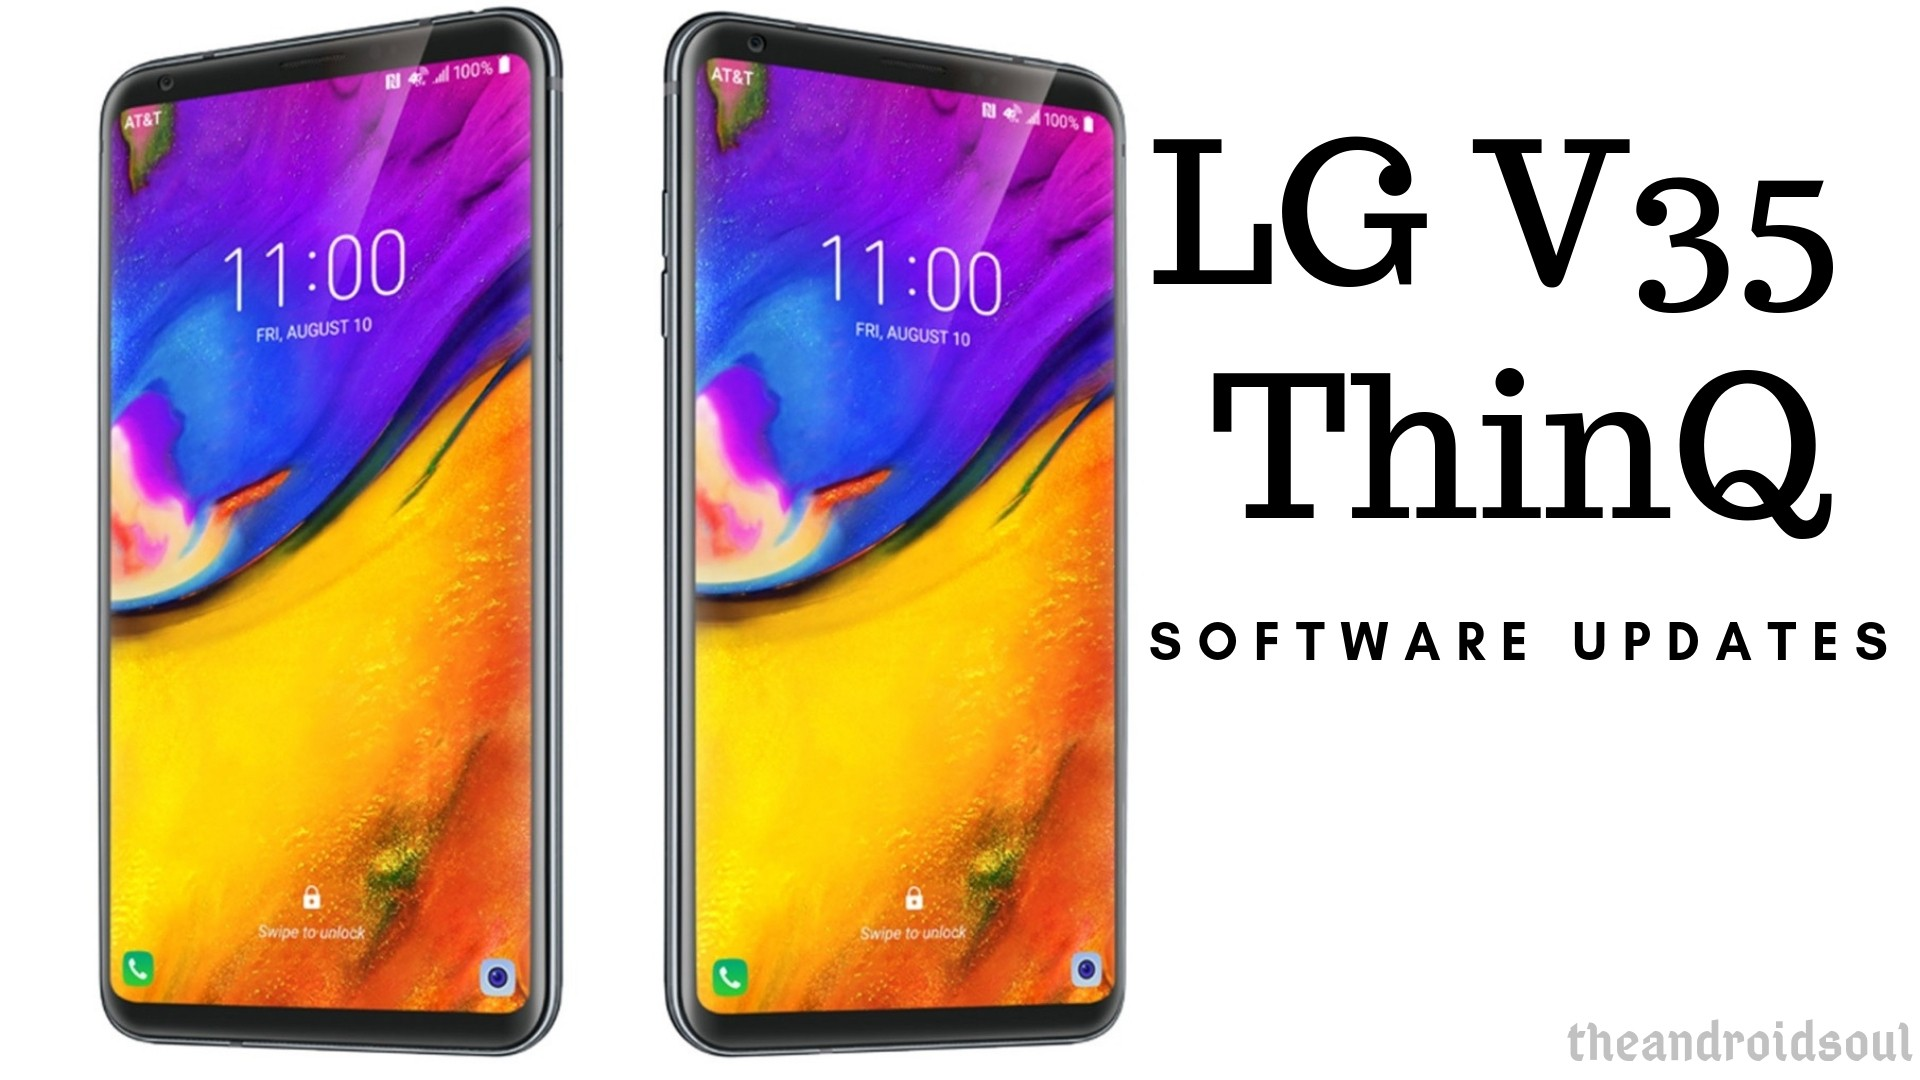 LG V35 ThinQ software update